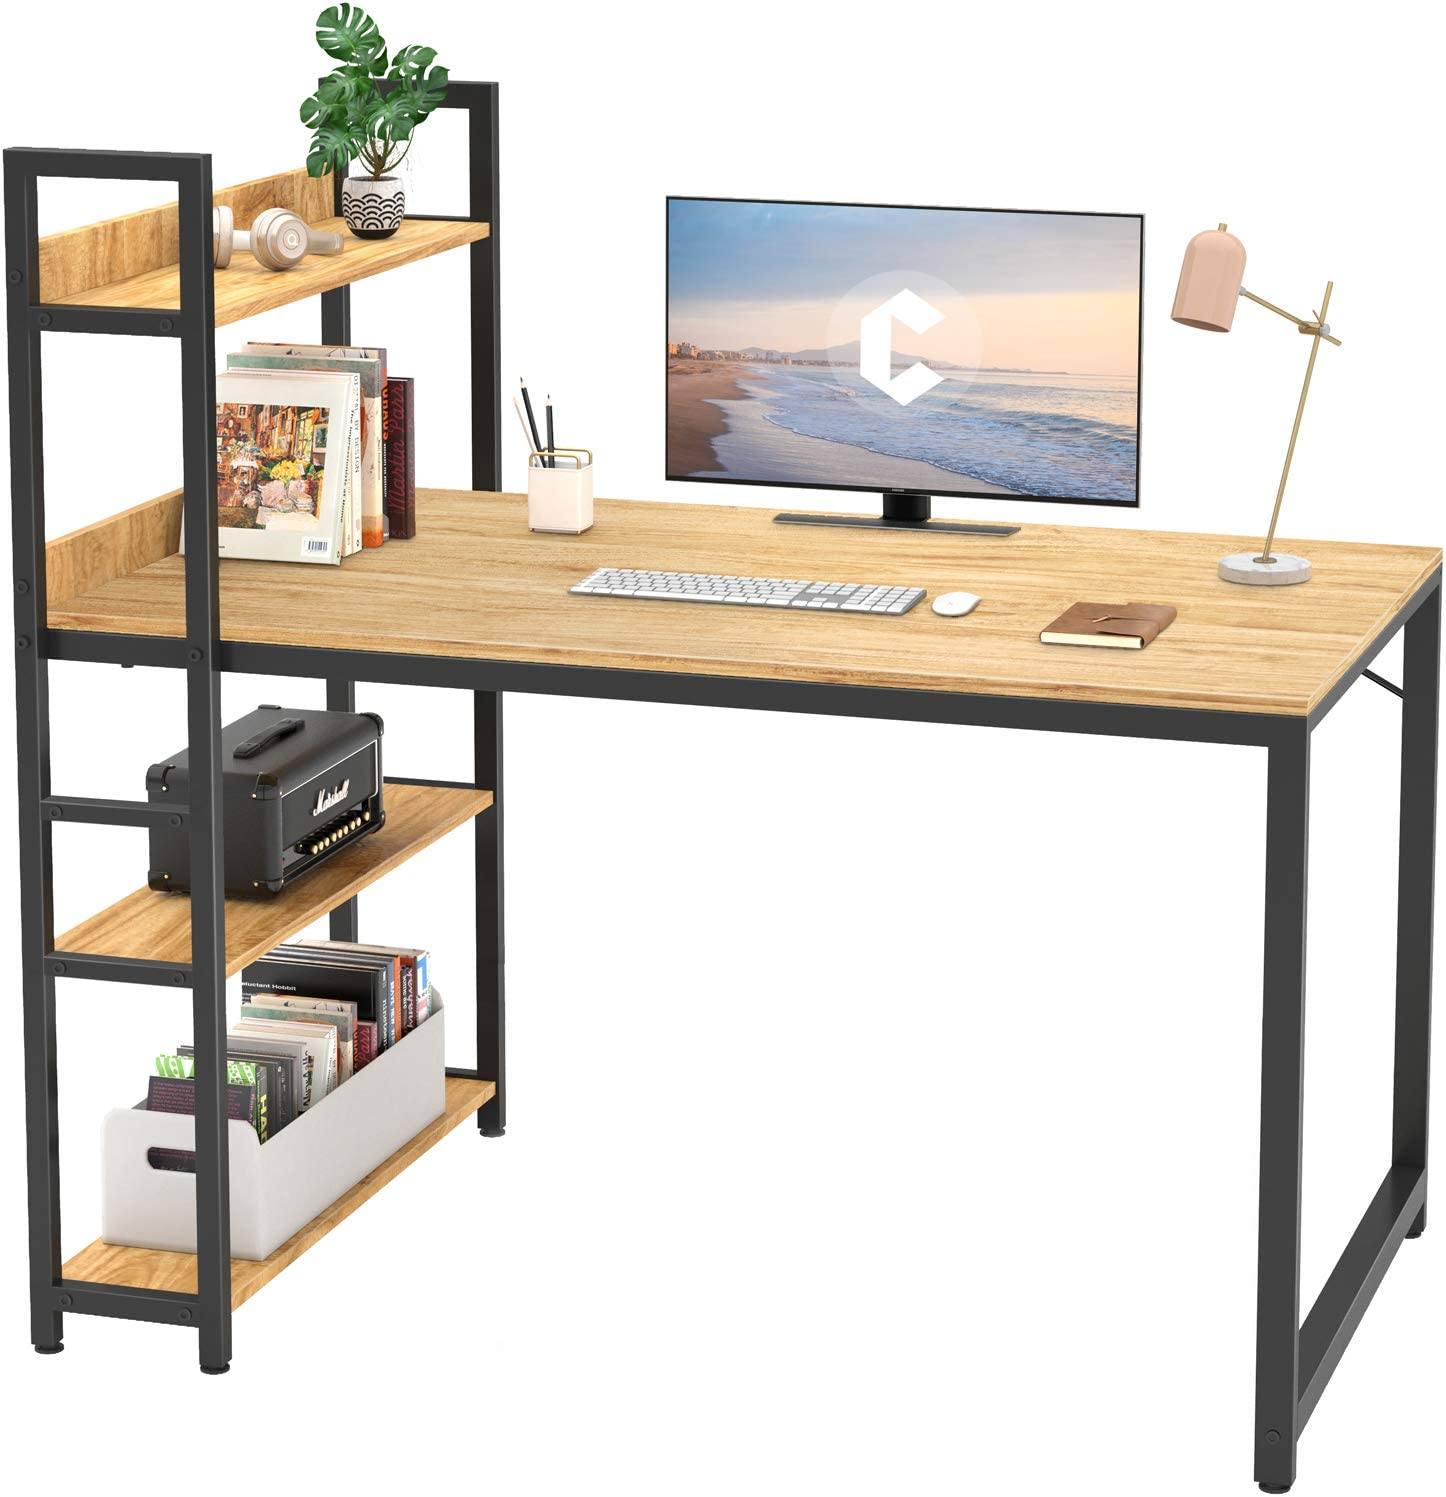 Cubicubi Computer Desk 47 inch with Storage Shelves Study Writing Table for Home Office,Modern Simple Style,Walnut